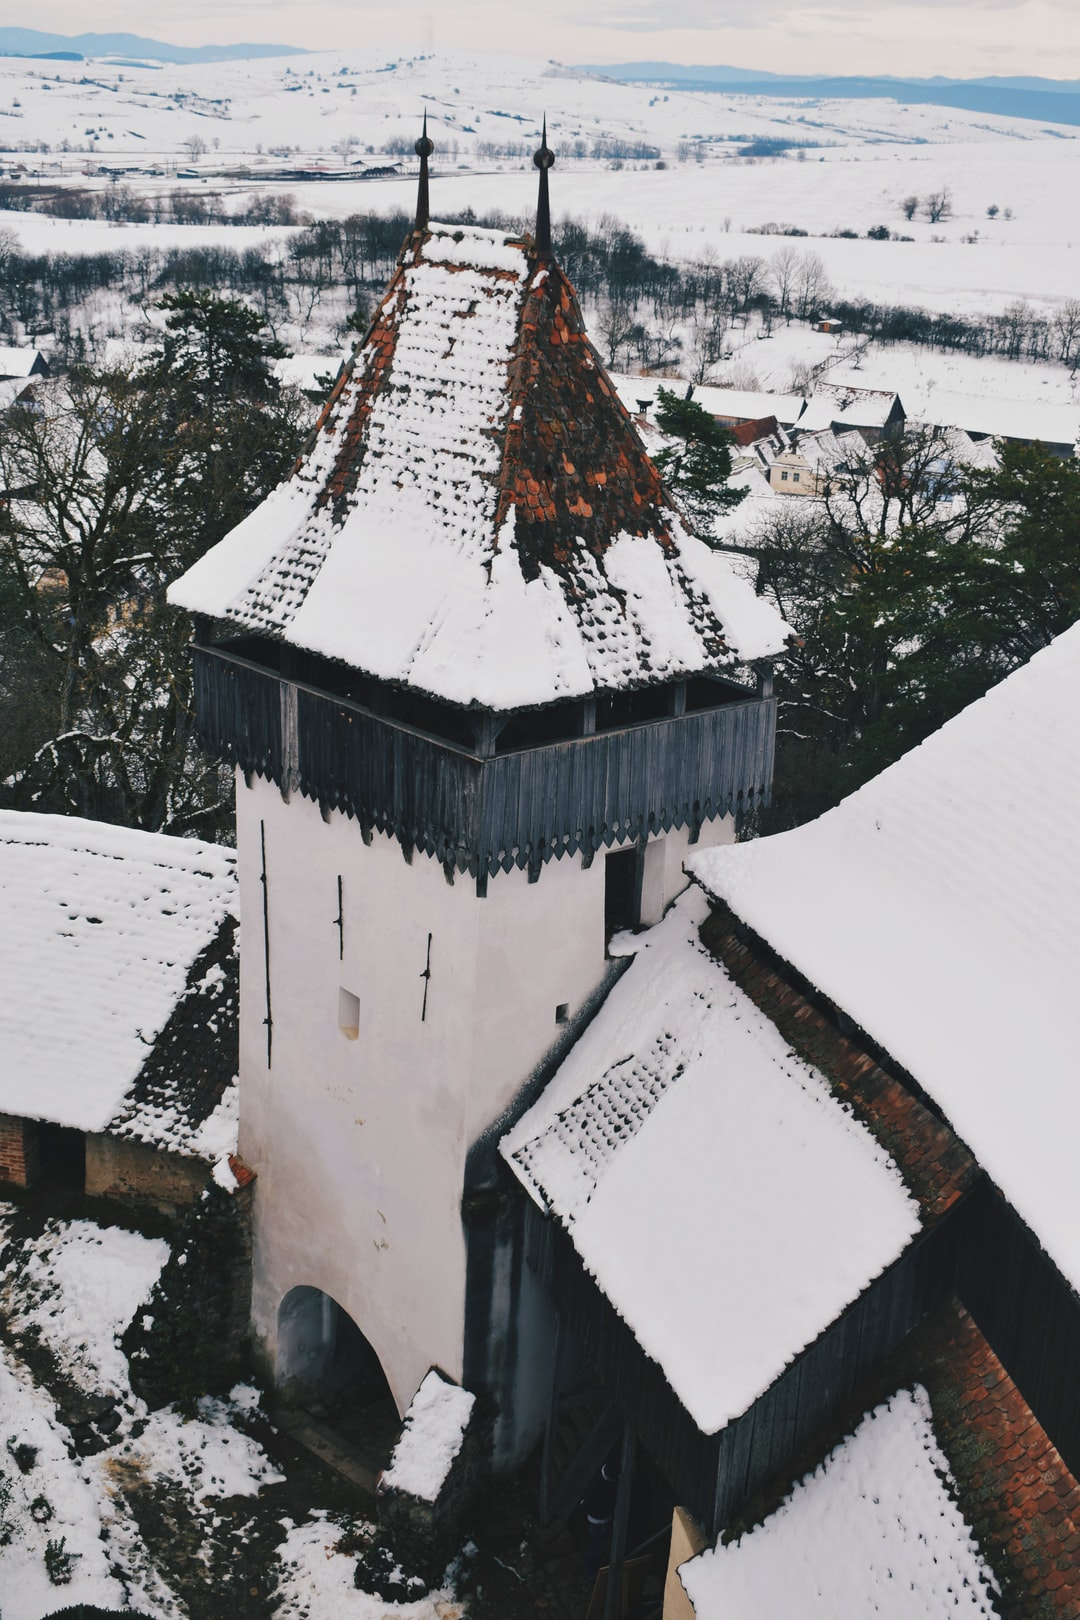 Spent an entire day visiting fortified churches. This photo is part of that series!